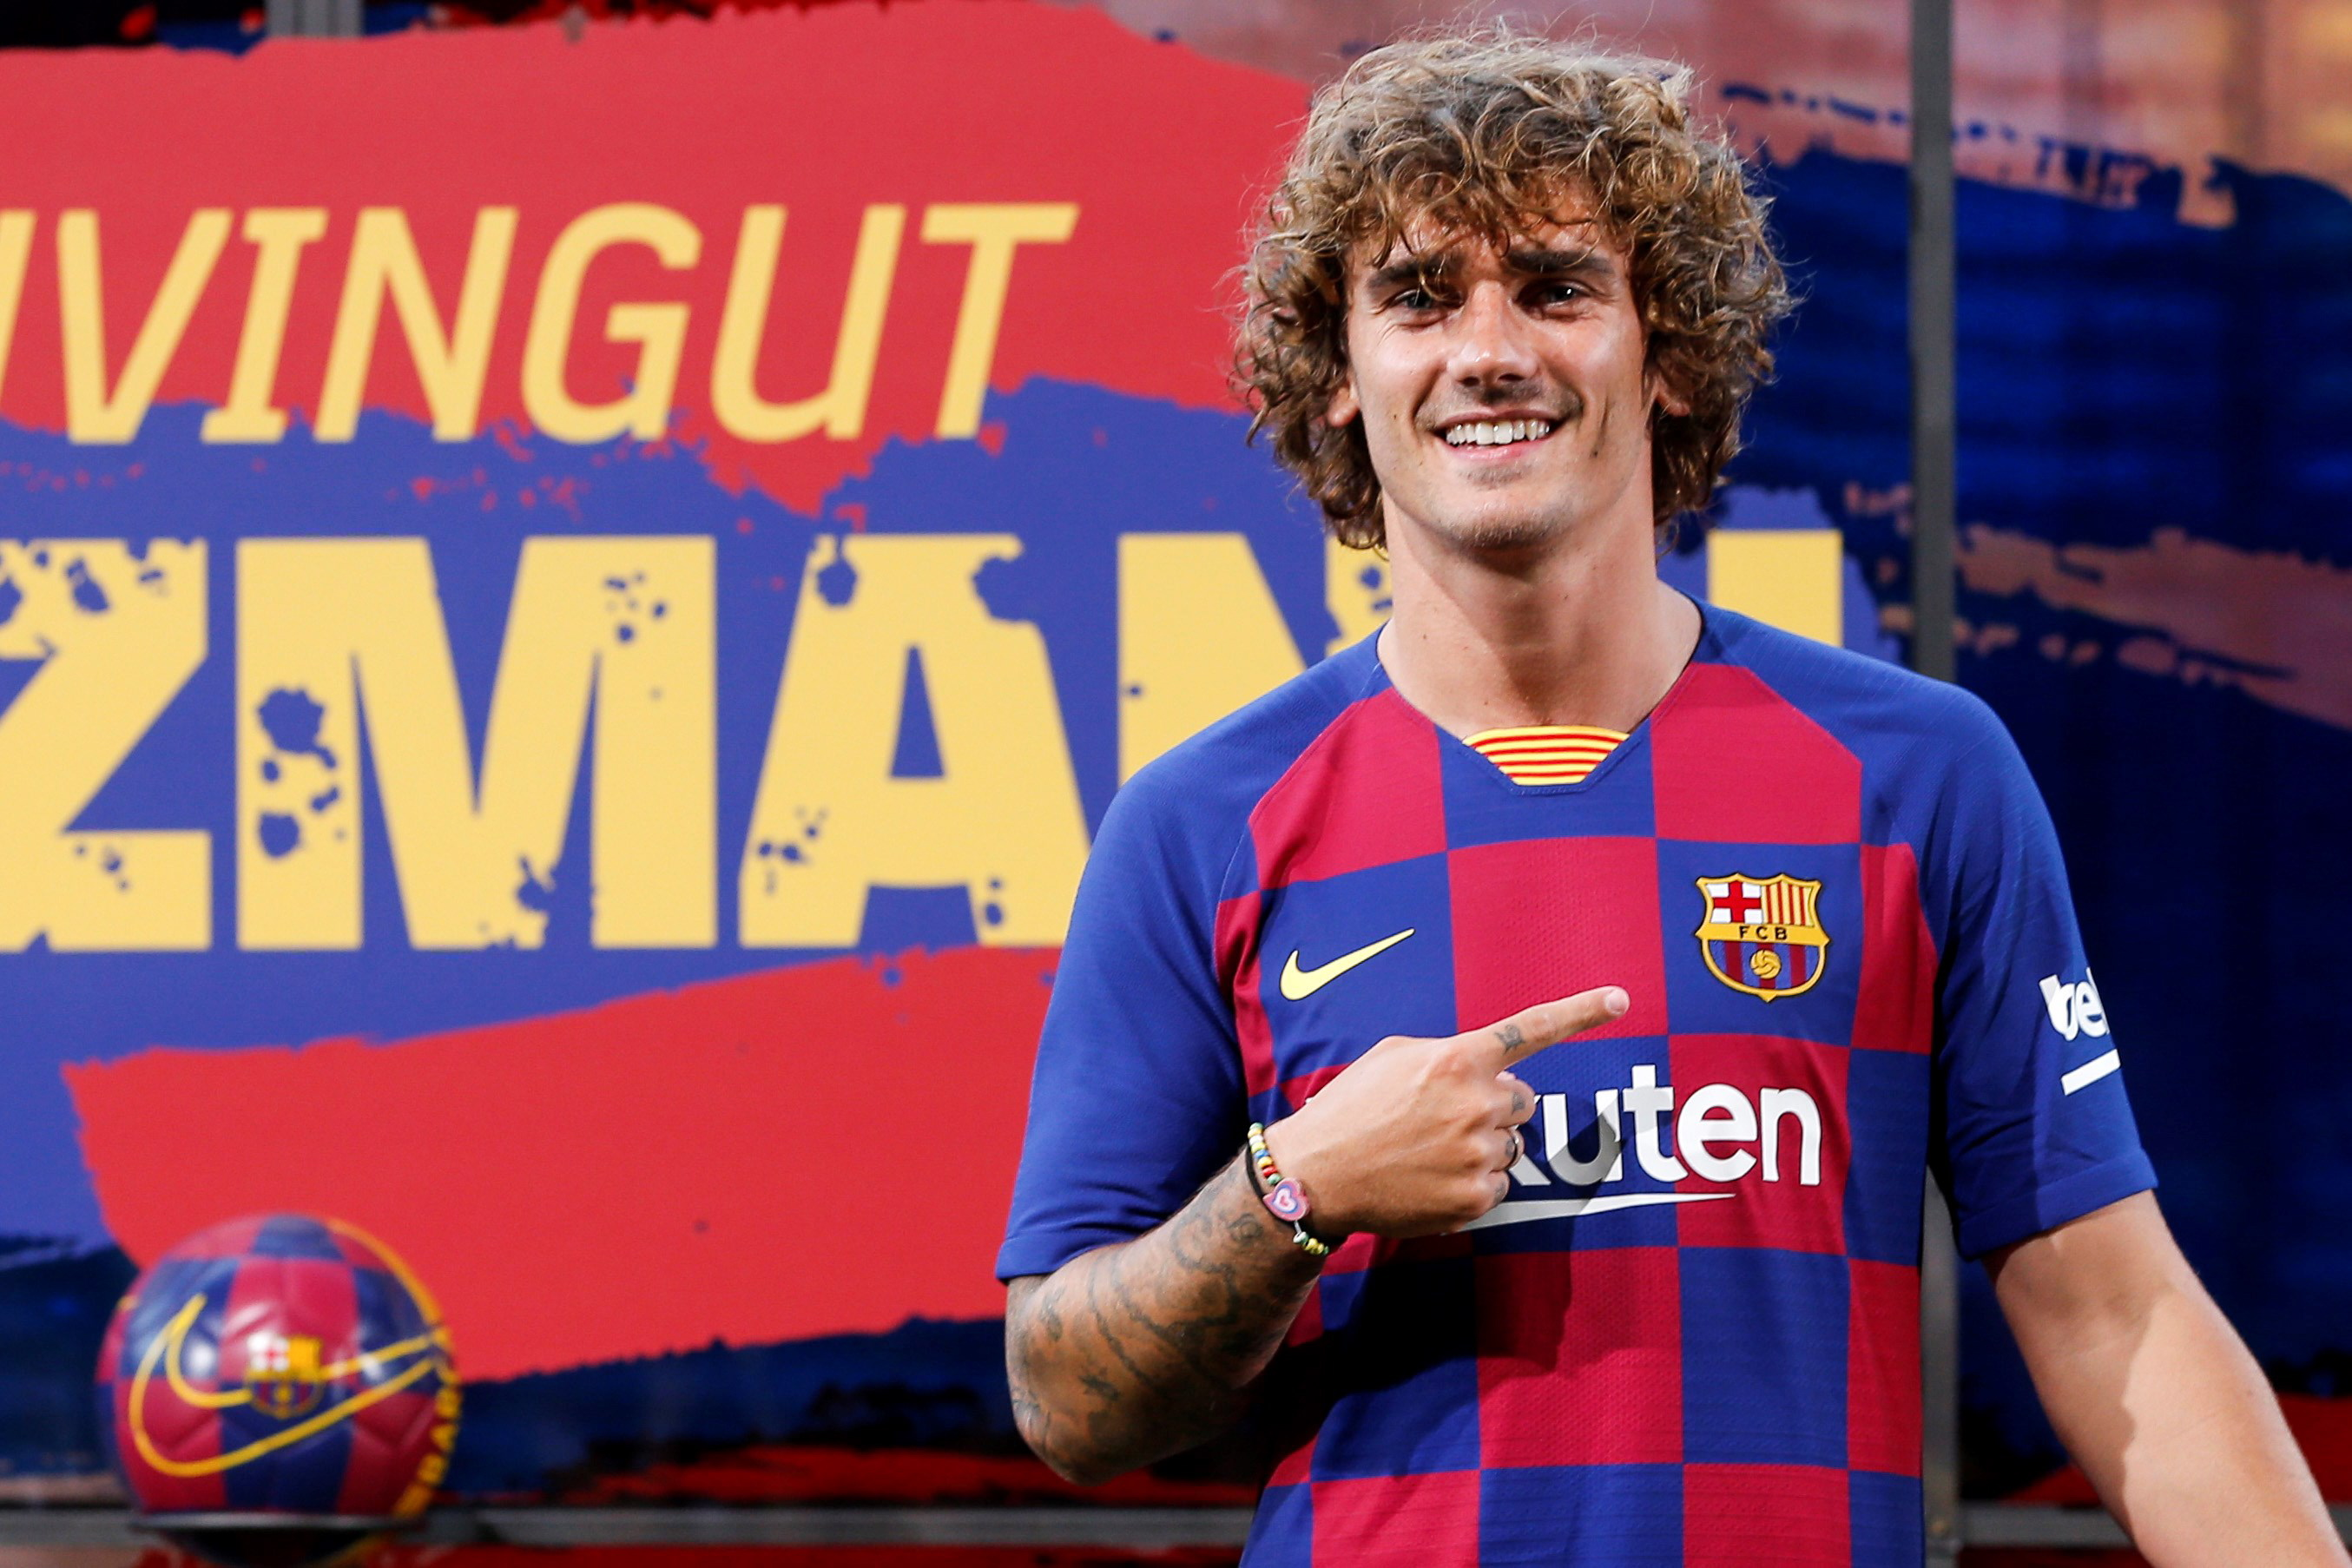 Antoine Griezmann says Messi is the face of football